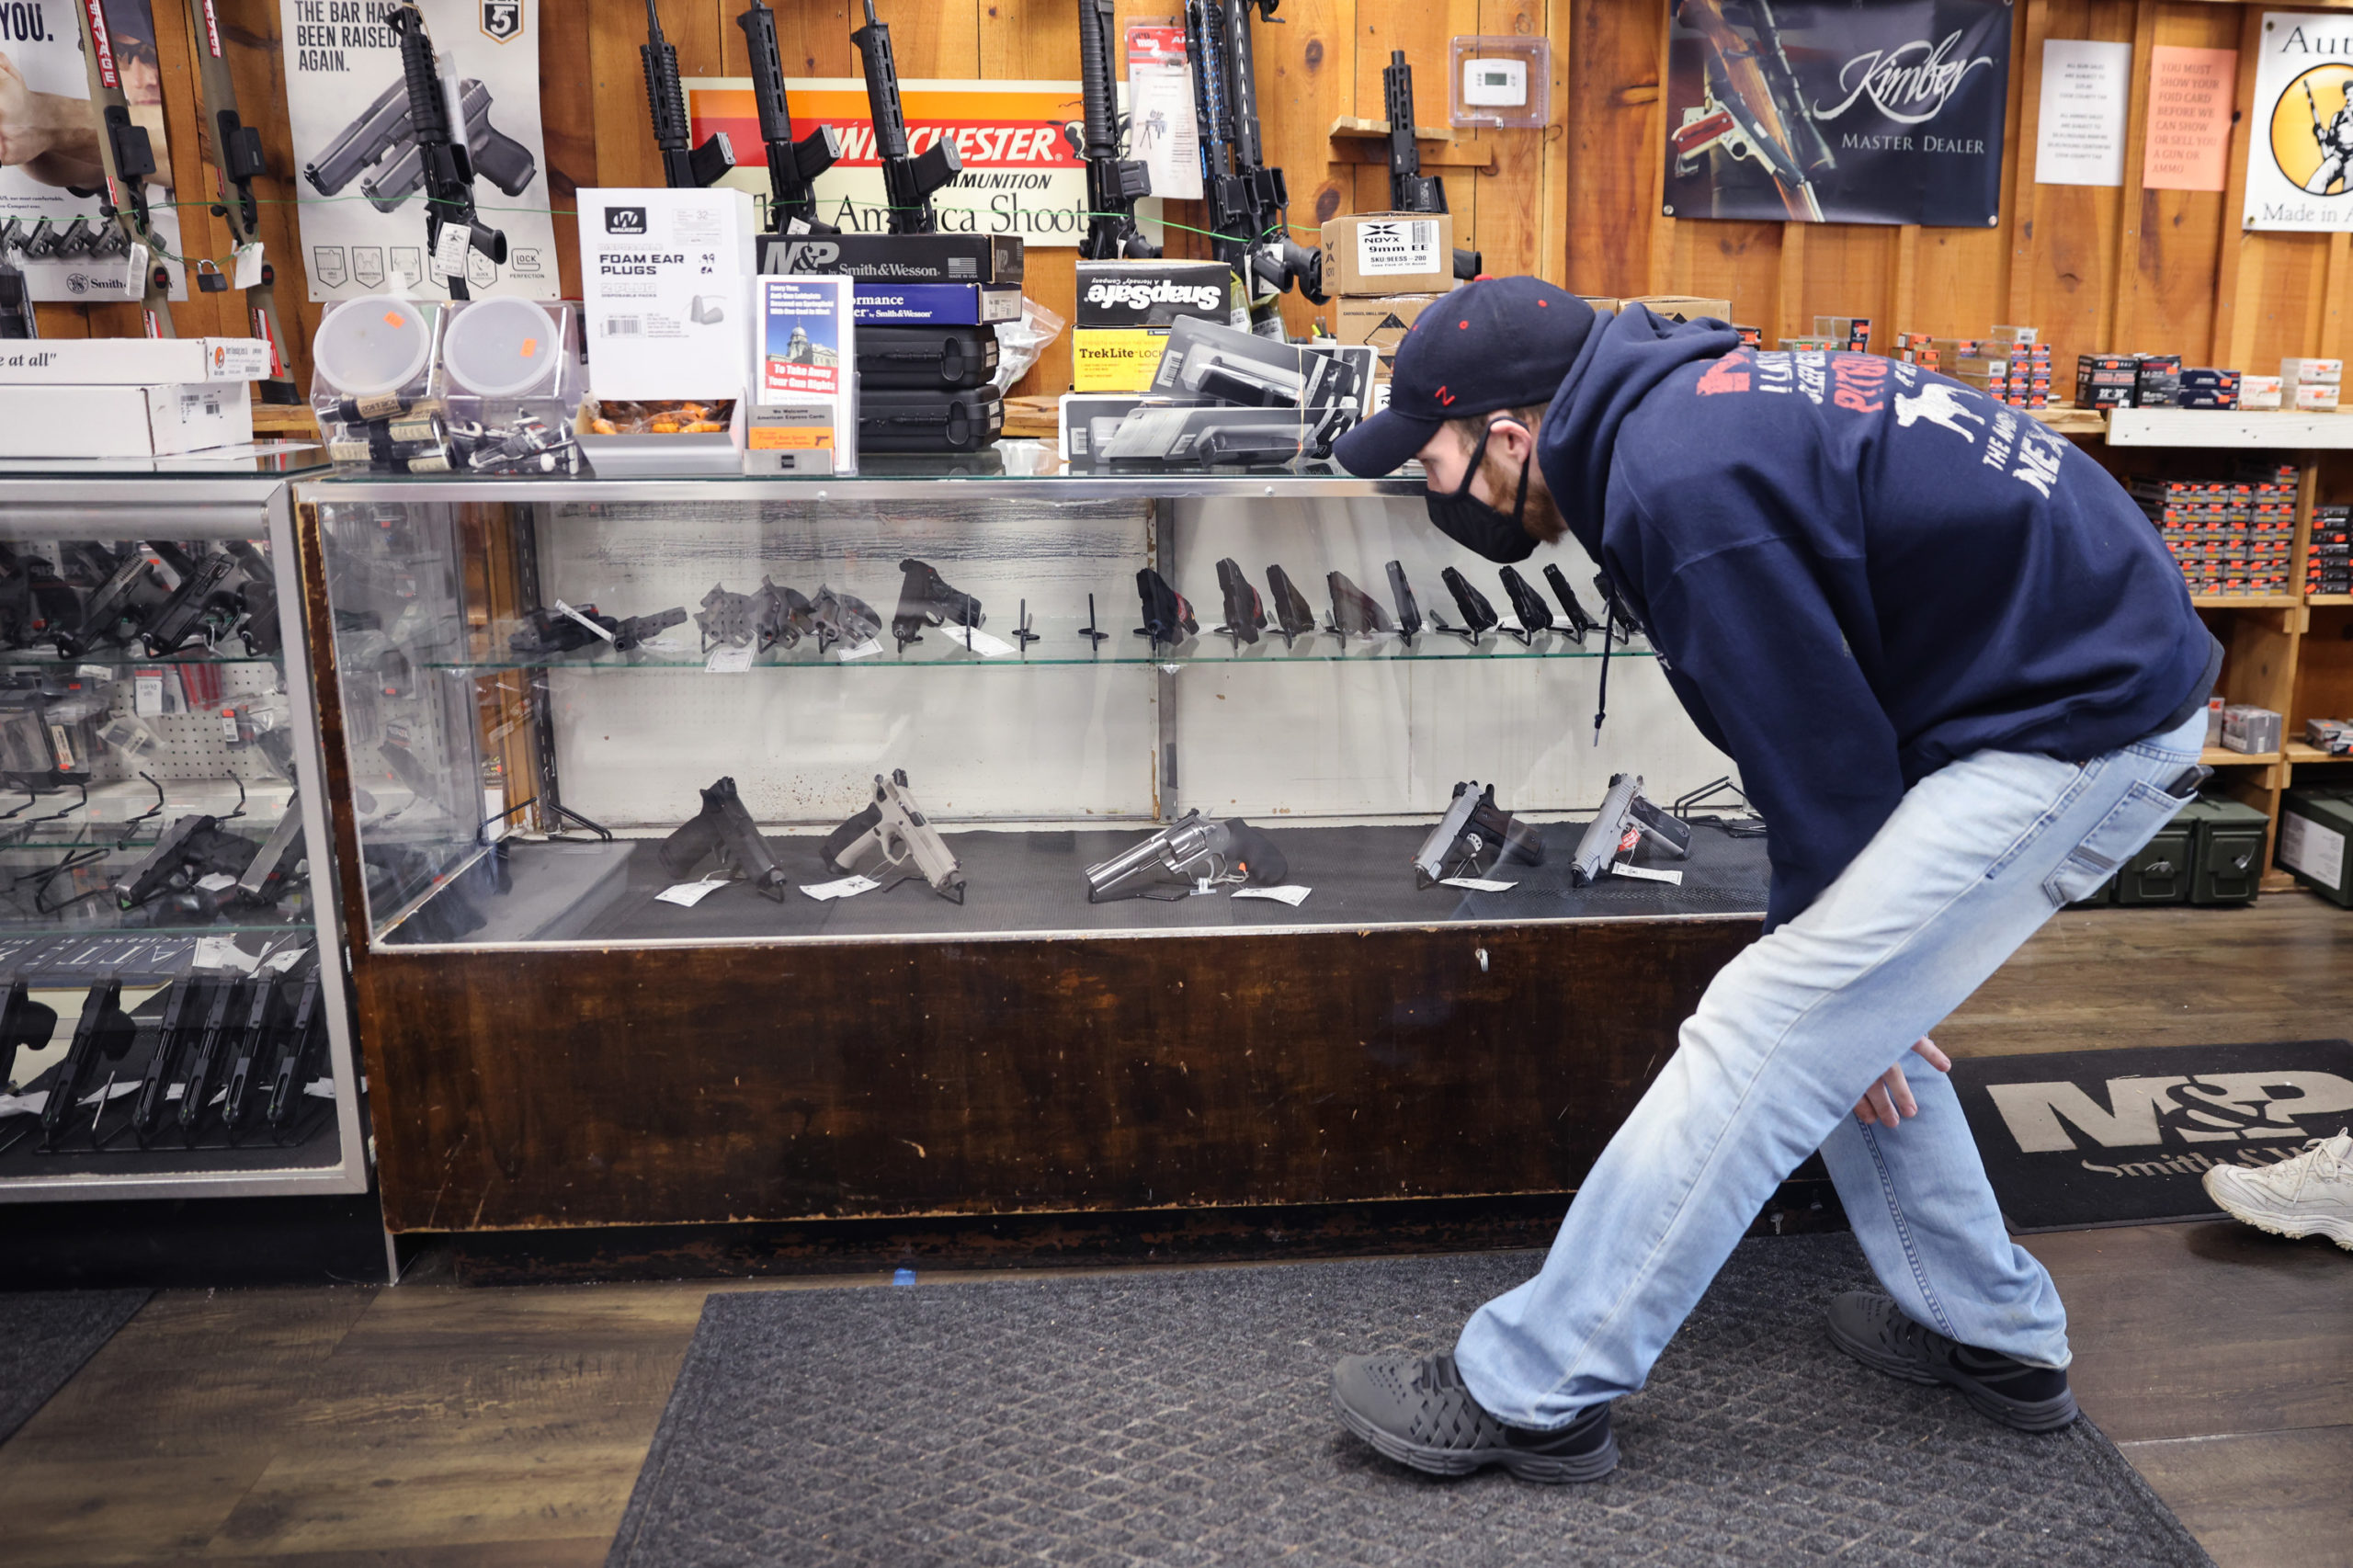 TINLEY PARK, ILLINOIS - APRIL 08: Alexander Carey shops for a new handgun at Freddie Bear Sports on April 08, 2021 in Tinley Park, Illinois. President Joe Biden today announced gun control measures which included stricter controls on the purchase of homemade firearms, commonly referred to as Ghost Guns and he made a push for national Red Flag legislation and other measures. (Photo by Scott Olson/Getty Images)